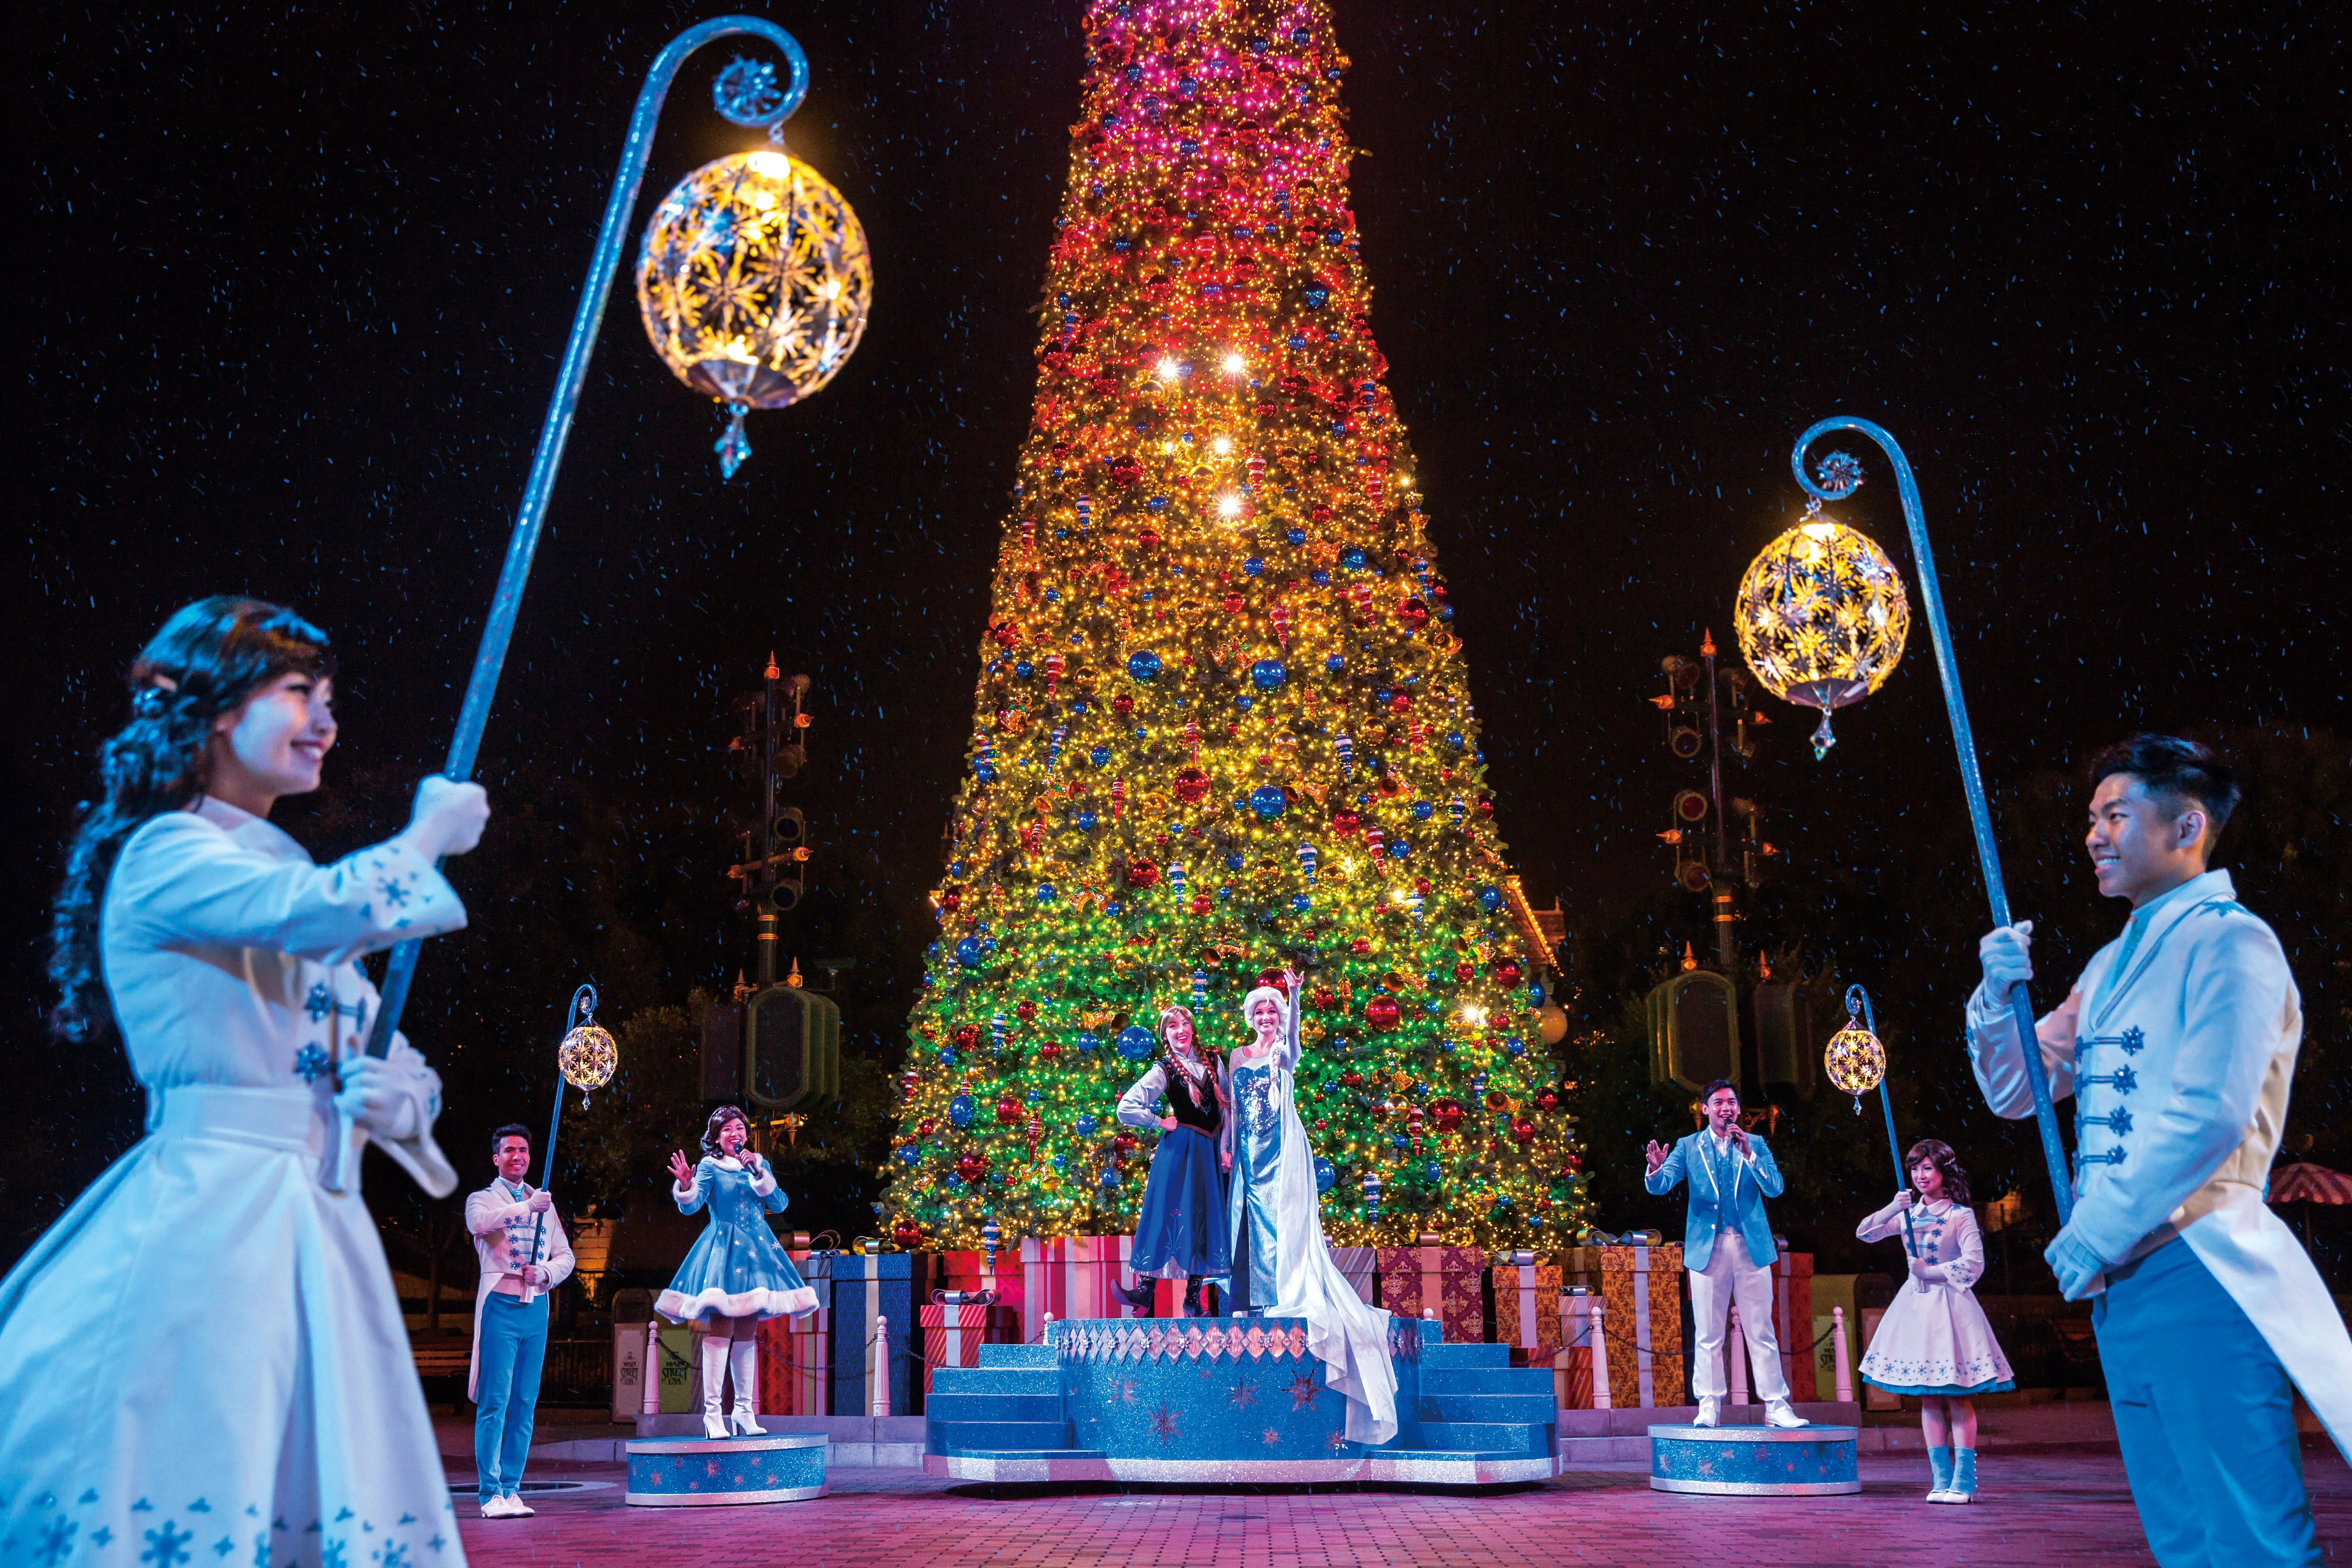 Christmas In Disneyland Hong Kong.Hkdisneyland Hong Kong Disneyland S 10th Anniversary With A